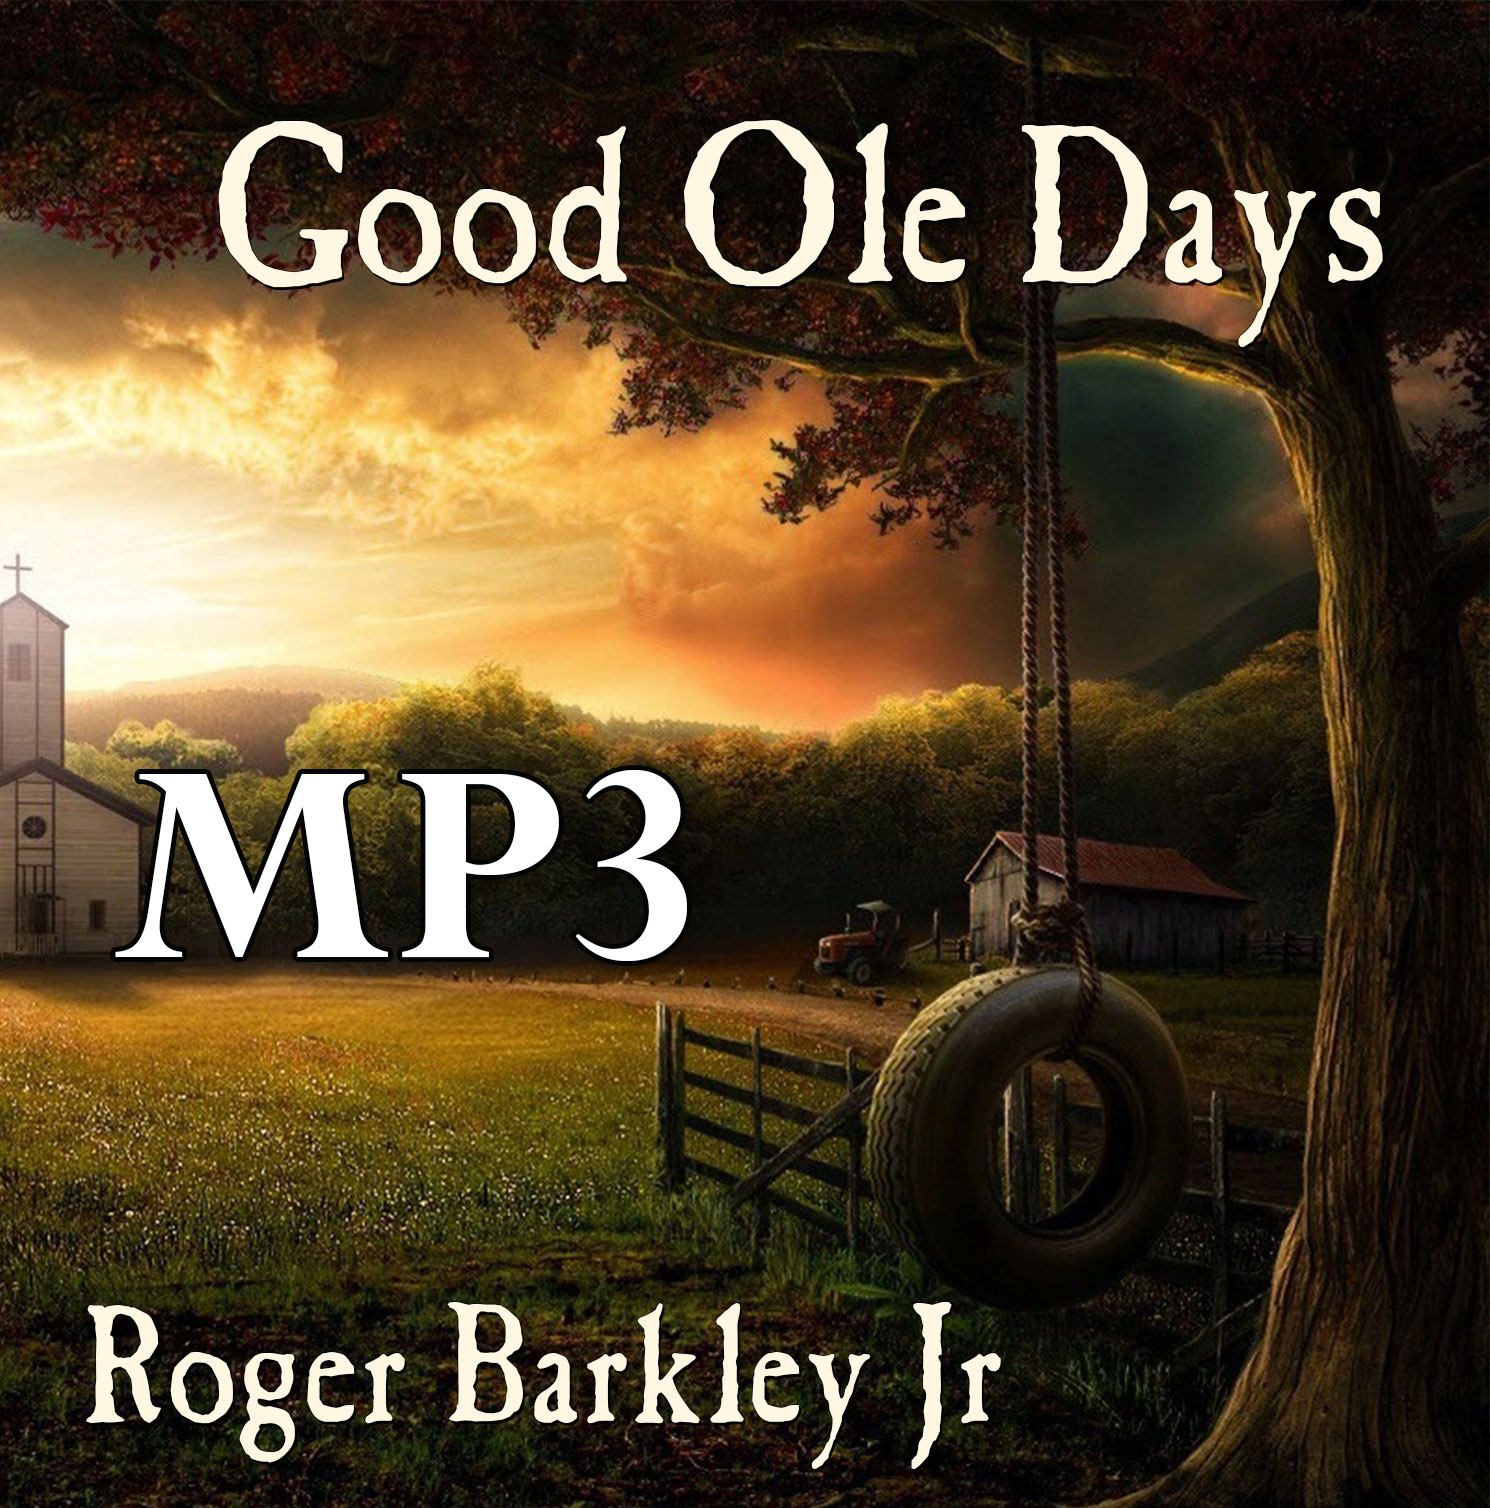 Good-Ole-Days-MP3-download.zip